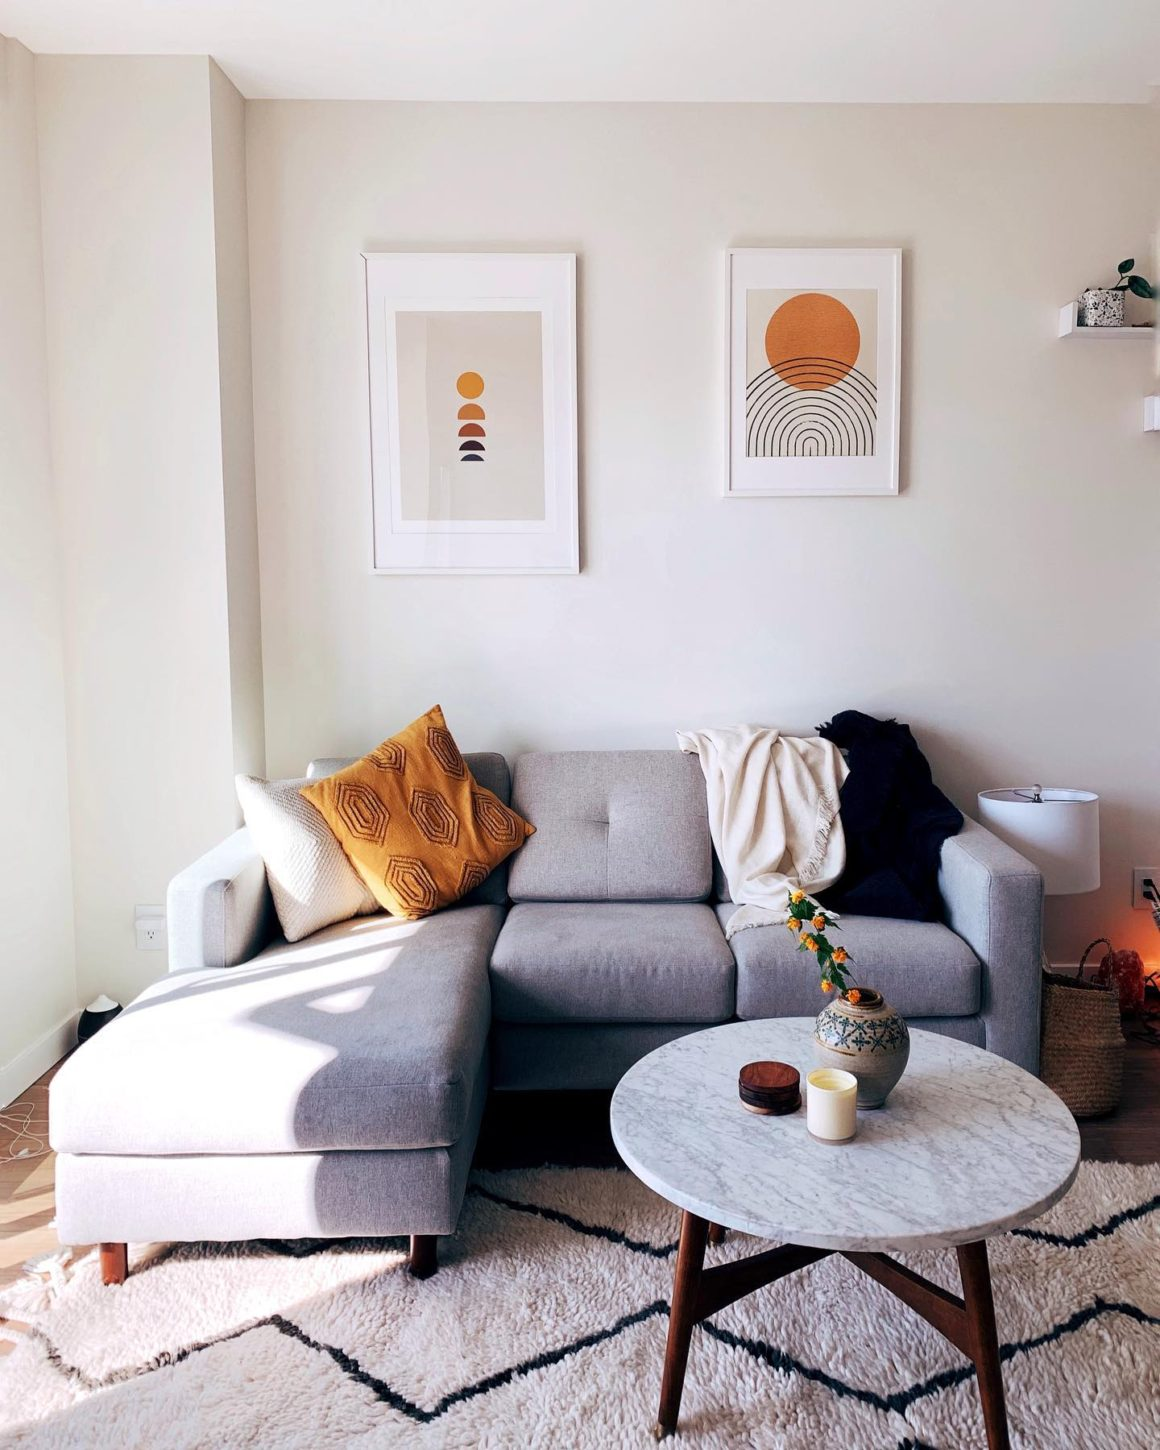 stores similar to west elm